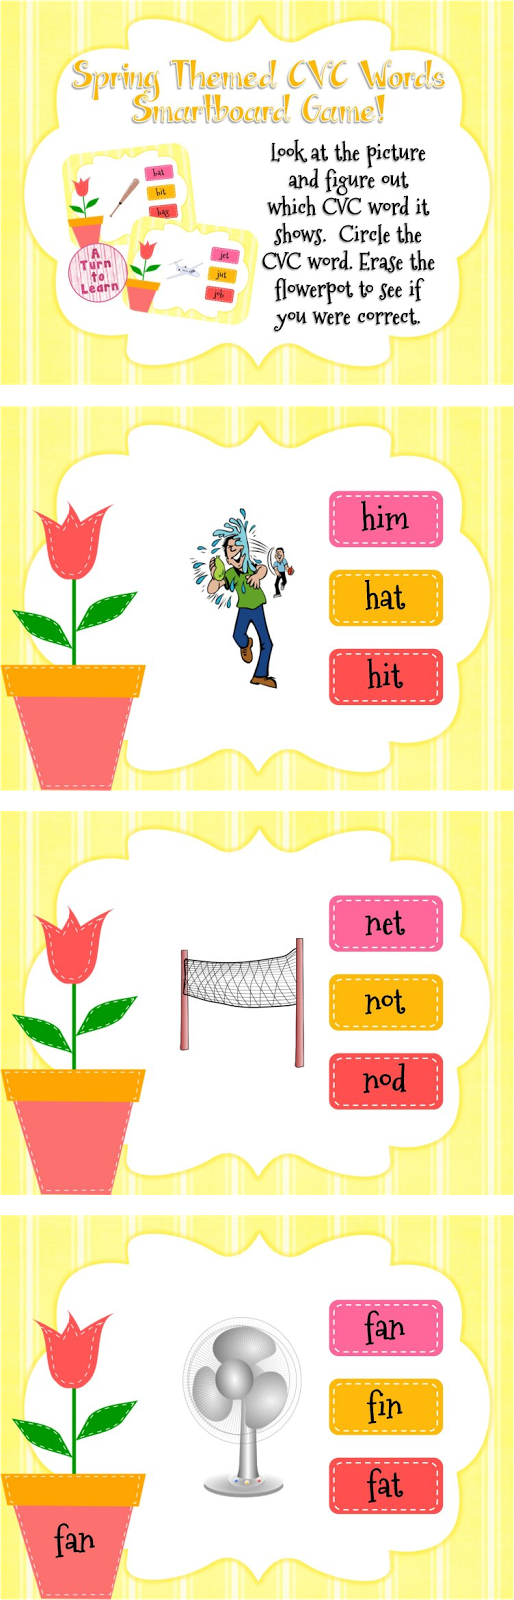 http://www.teacherspayteachers.com/Product/Spring-Themed-CVC-Words-Game-for-Smartboard-or-Promethean-Board-1179211